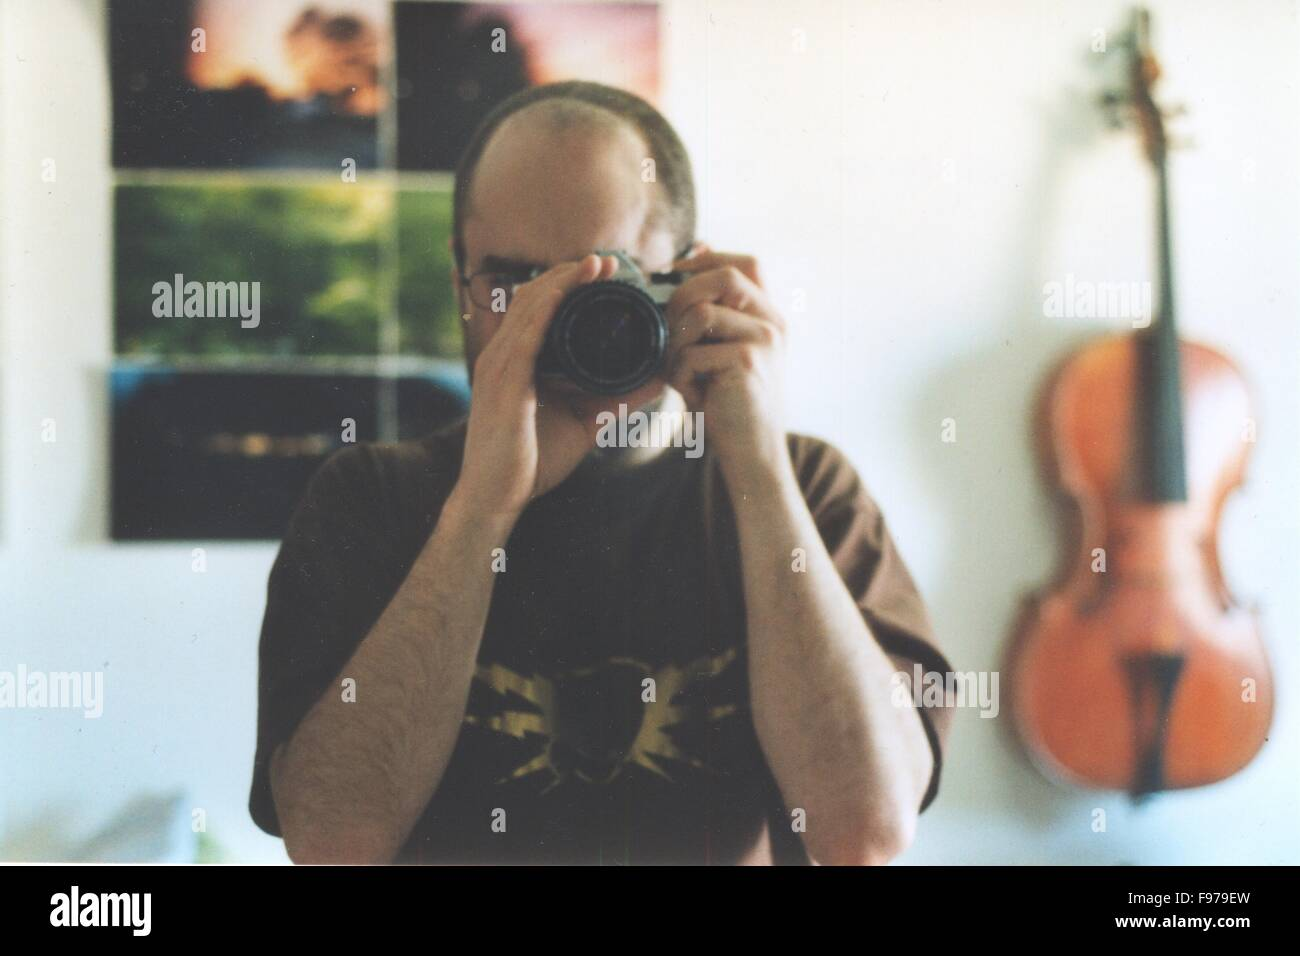 Close-Up Of A Male Photographer - Stock Image